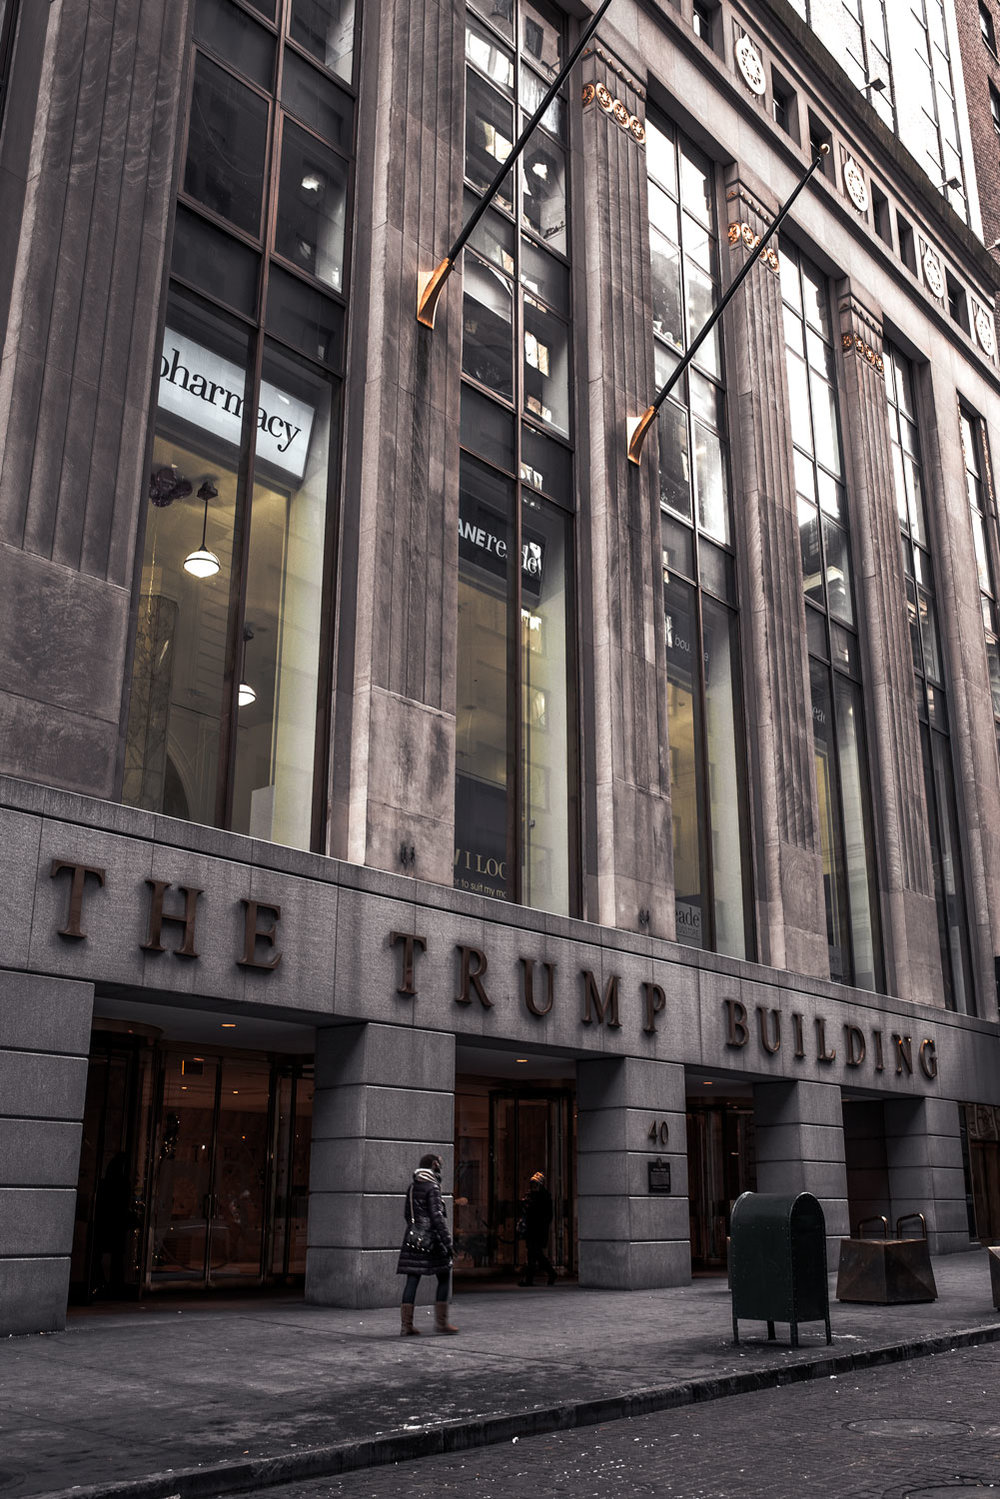 The Trump Building at 40 Wall Street